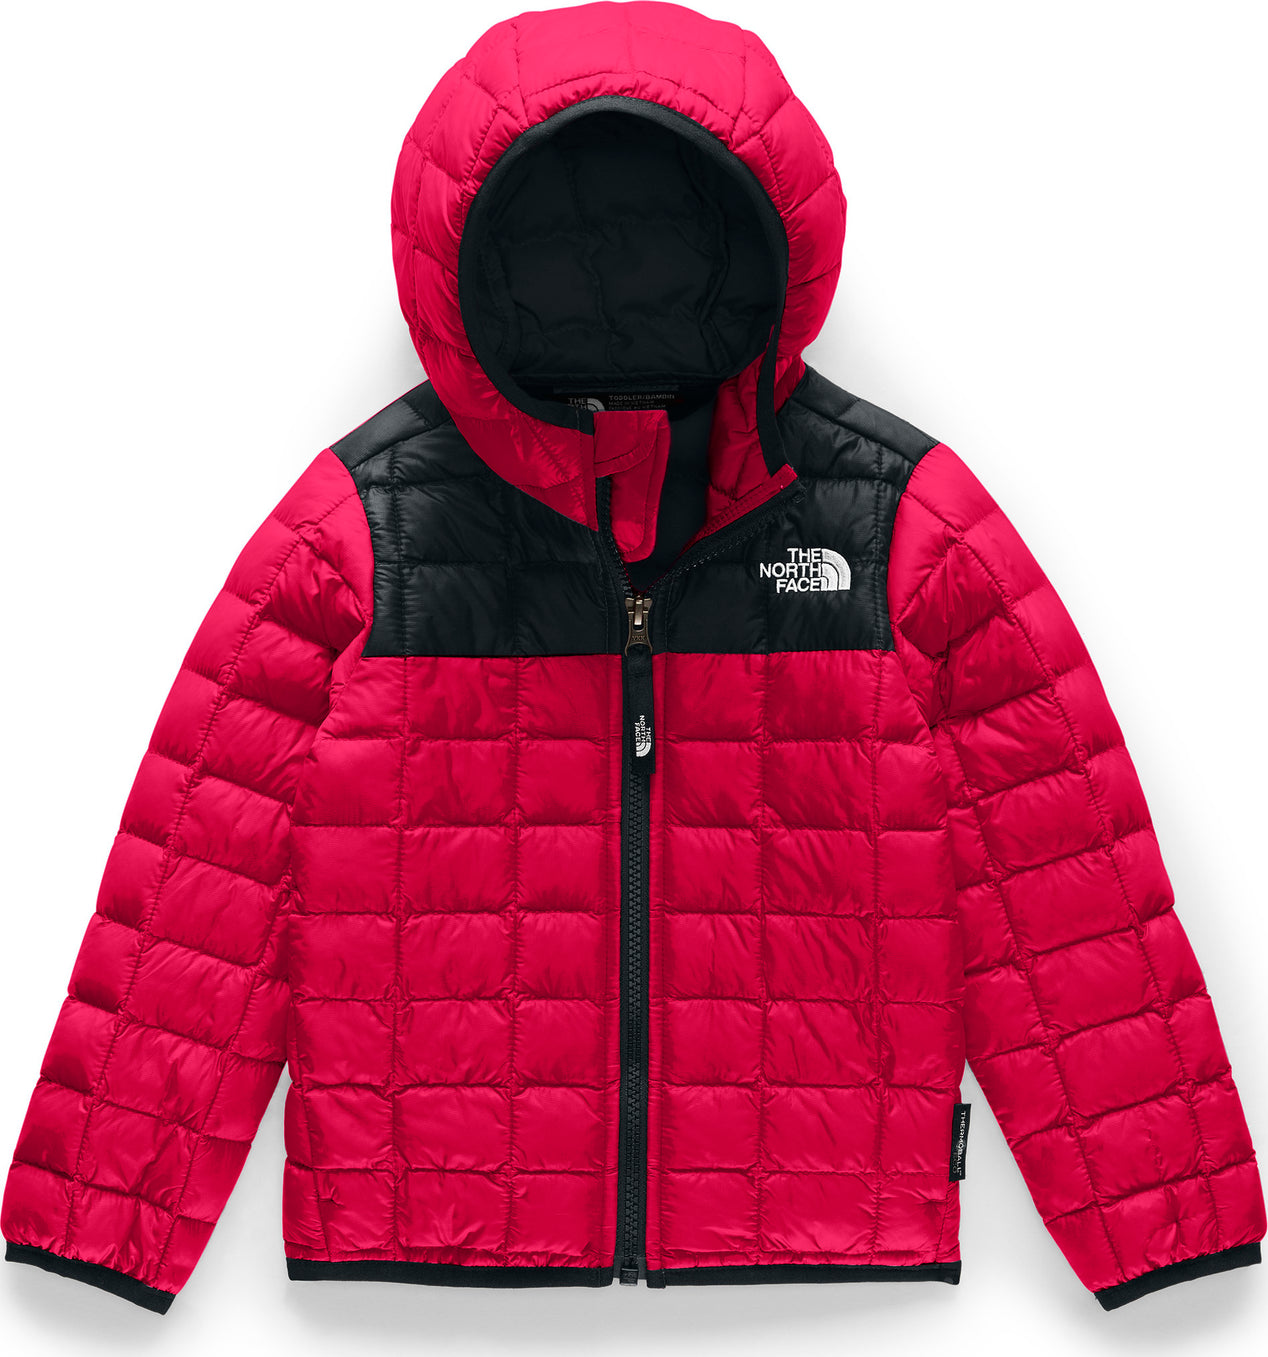 d85cc57c0 The North Face ThermoBall™ Eco Hoodie - Toddler